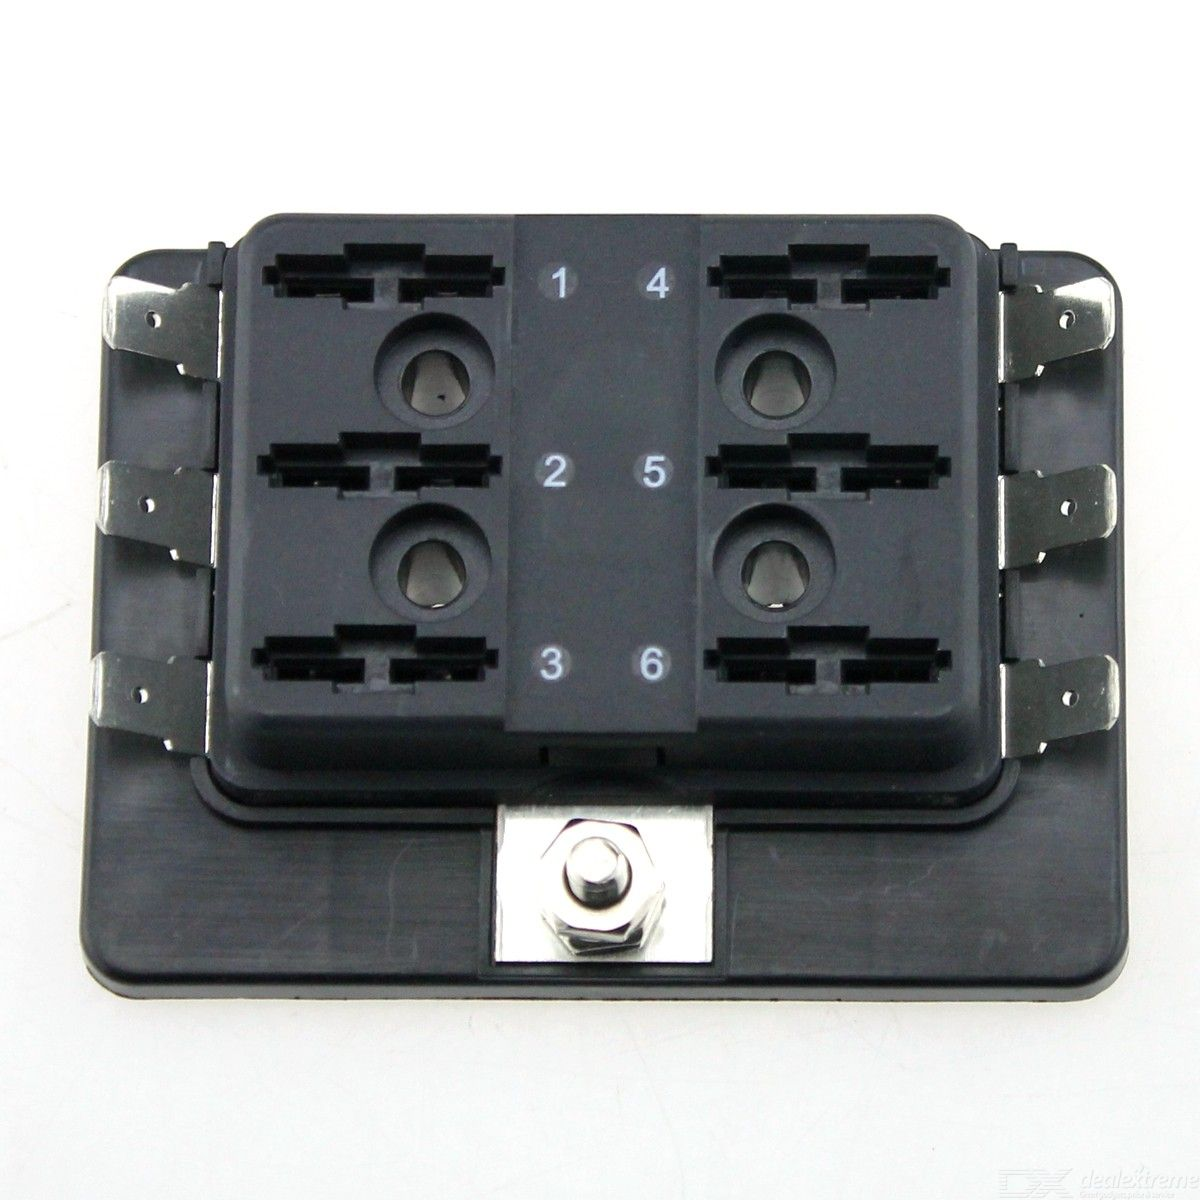 hight resolution of  f286 car rv 6 way fuse box without light automotive blade fuse box block holder